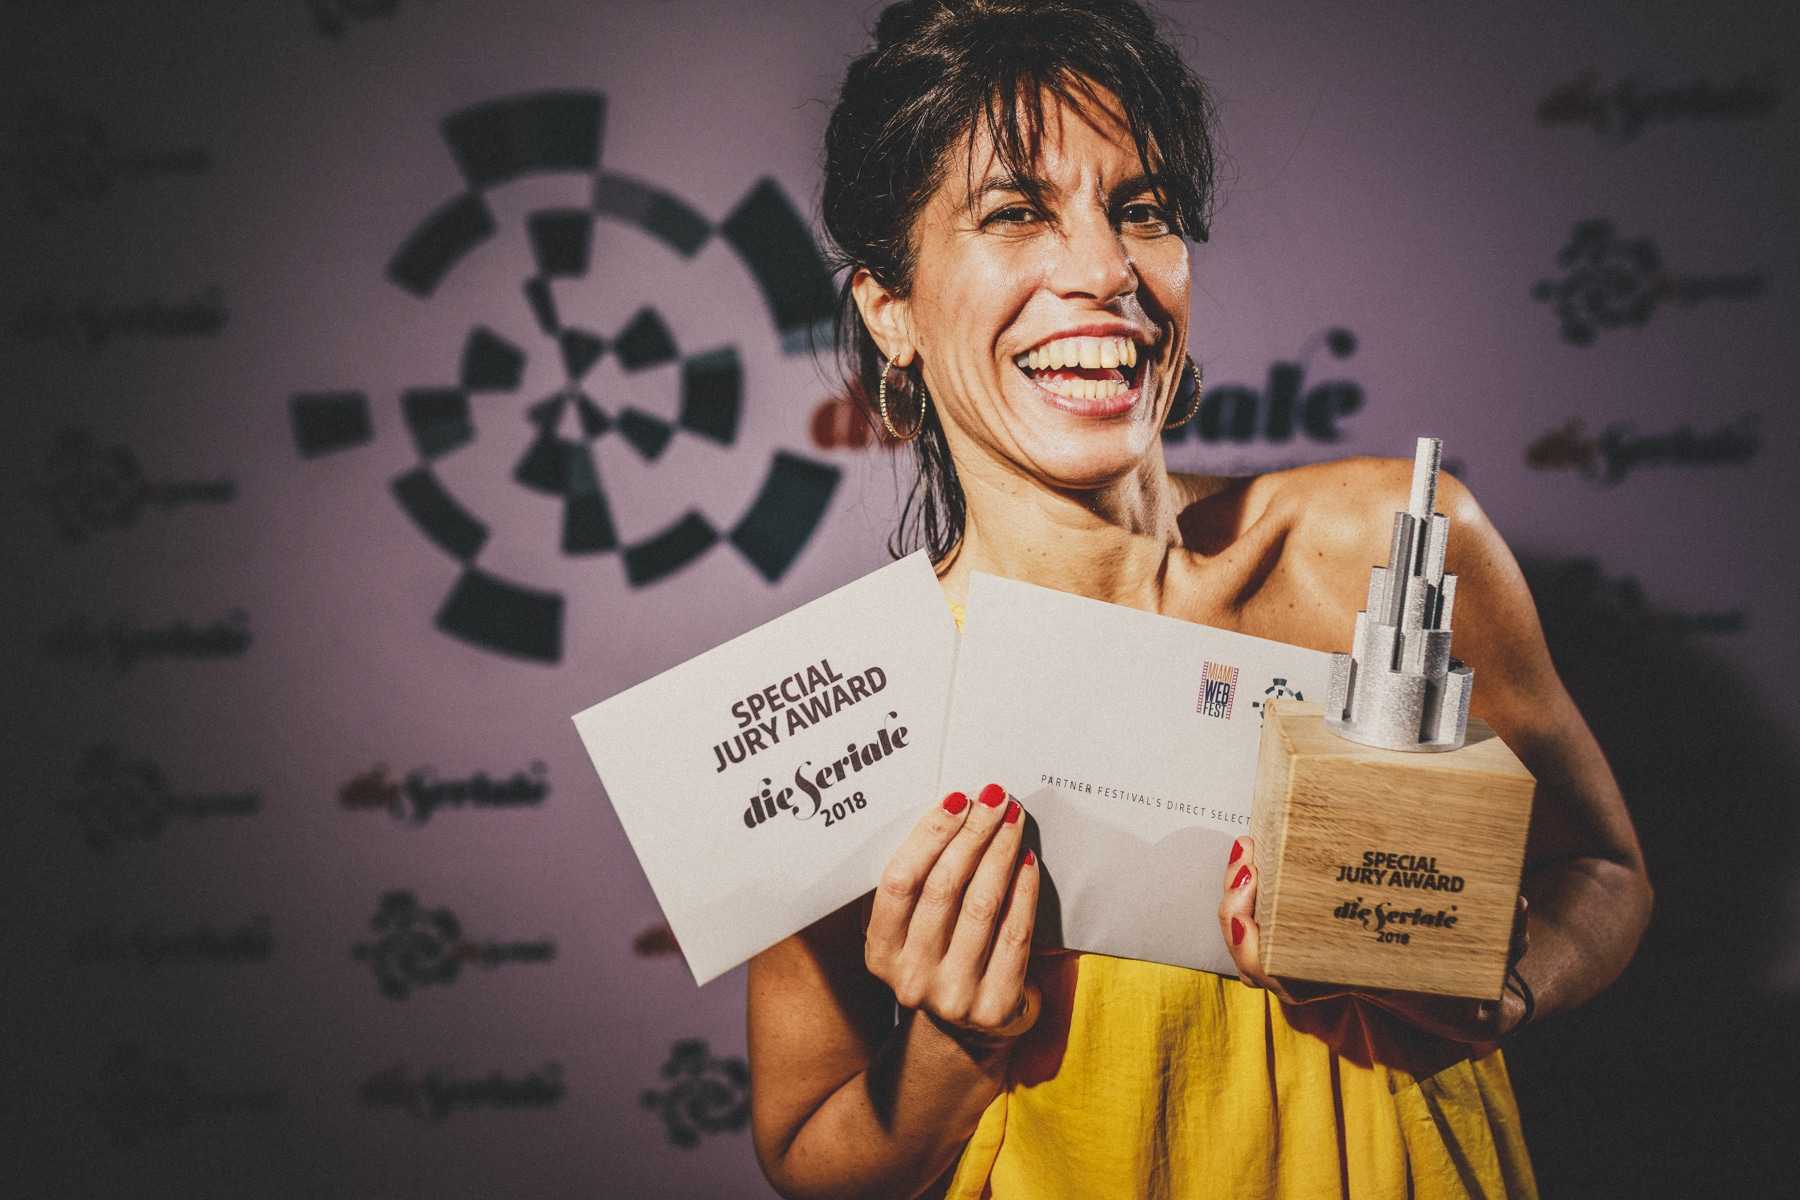 """SPECIAL JURY AWARD - Gisela Benenzon, creator and director of """"I'm Ander"""" from Buenos Aires, Argentina. 